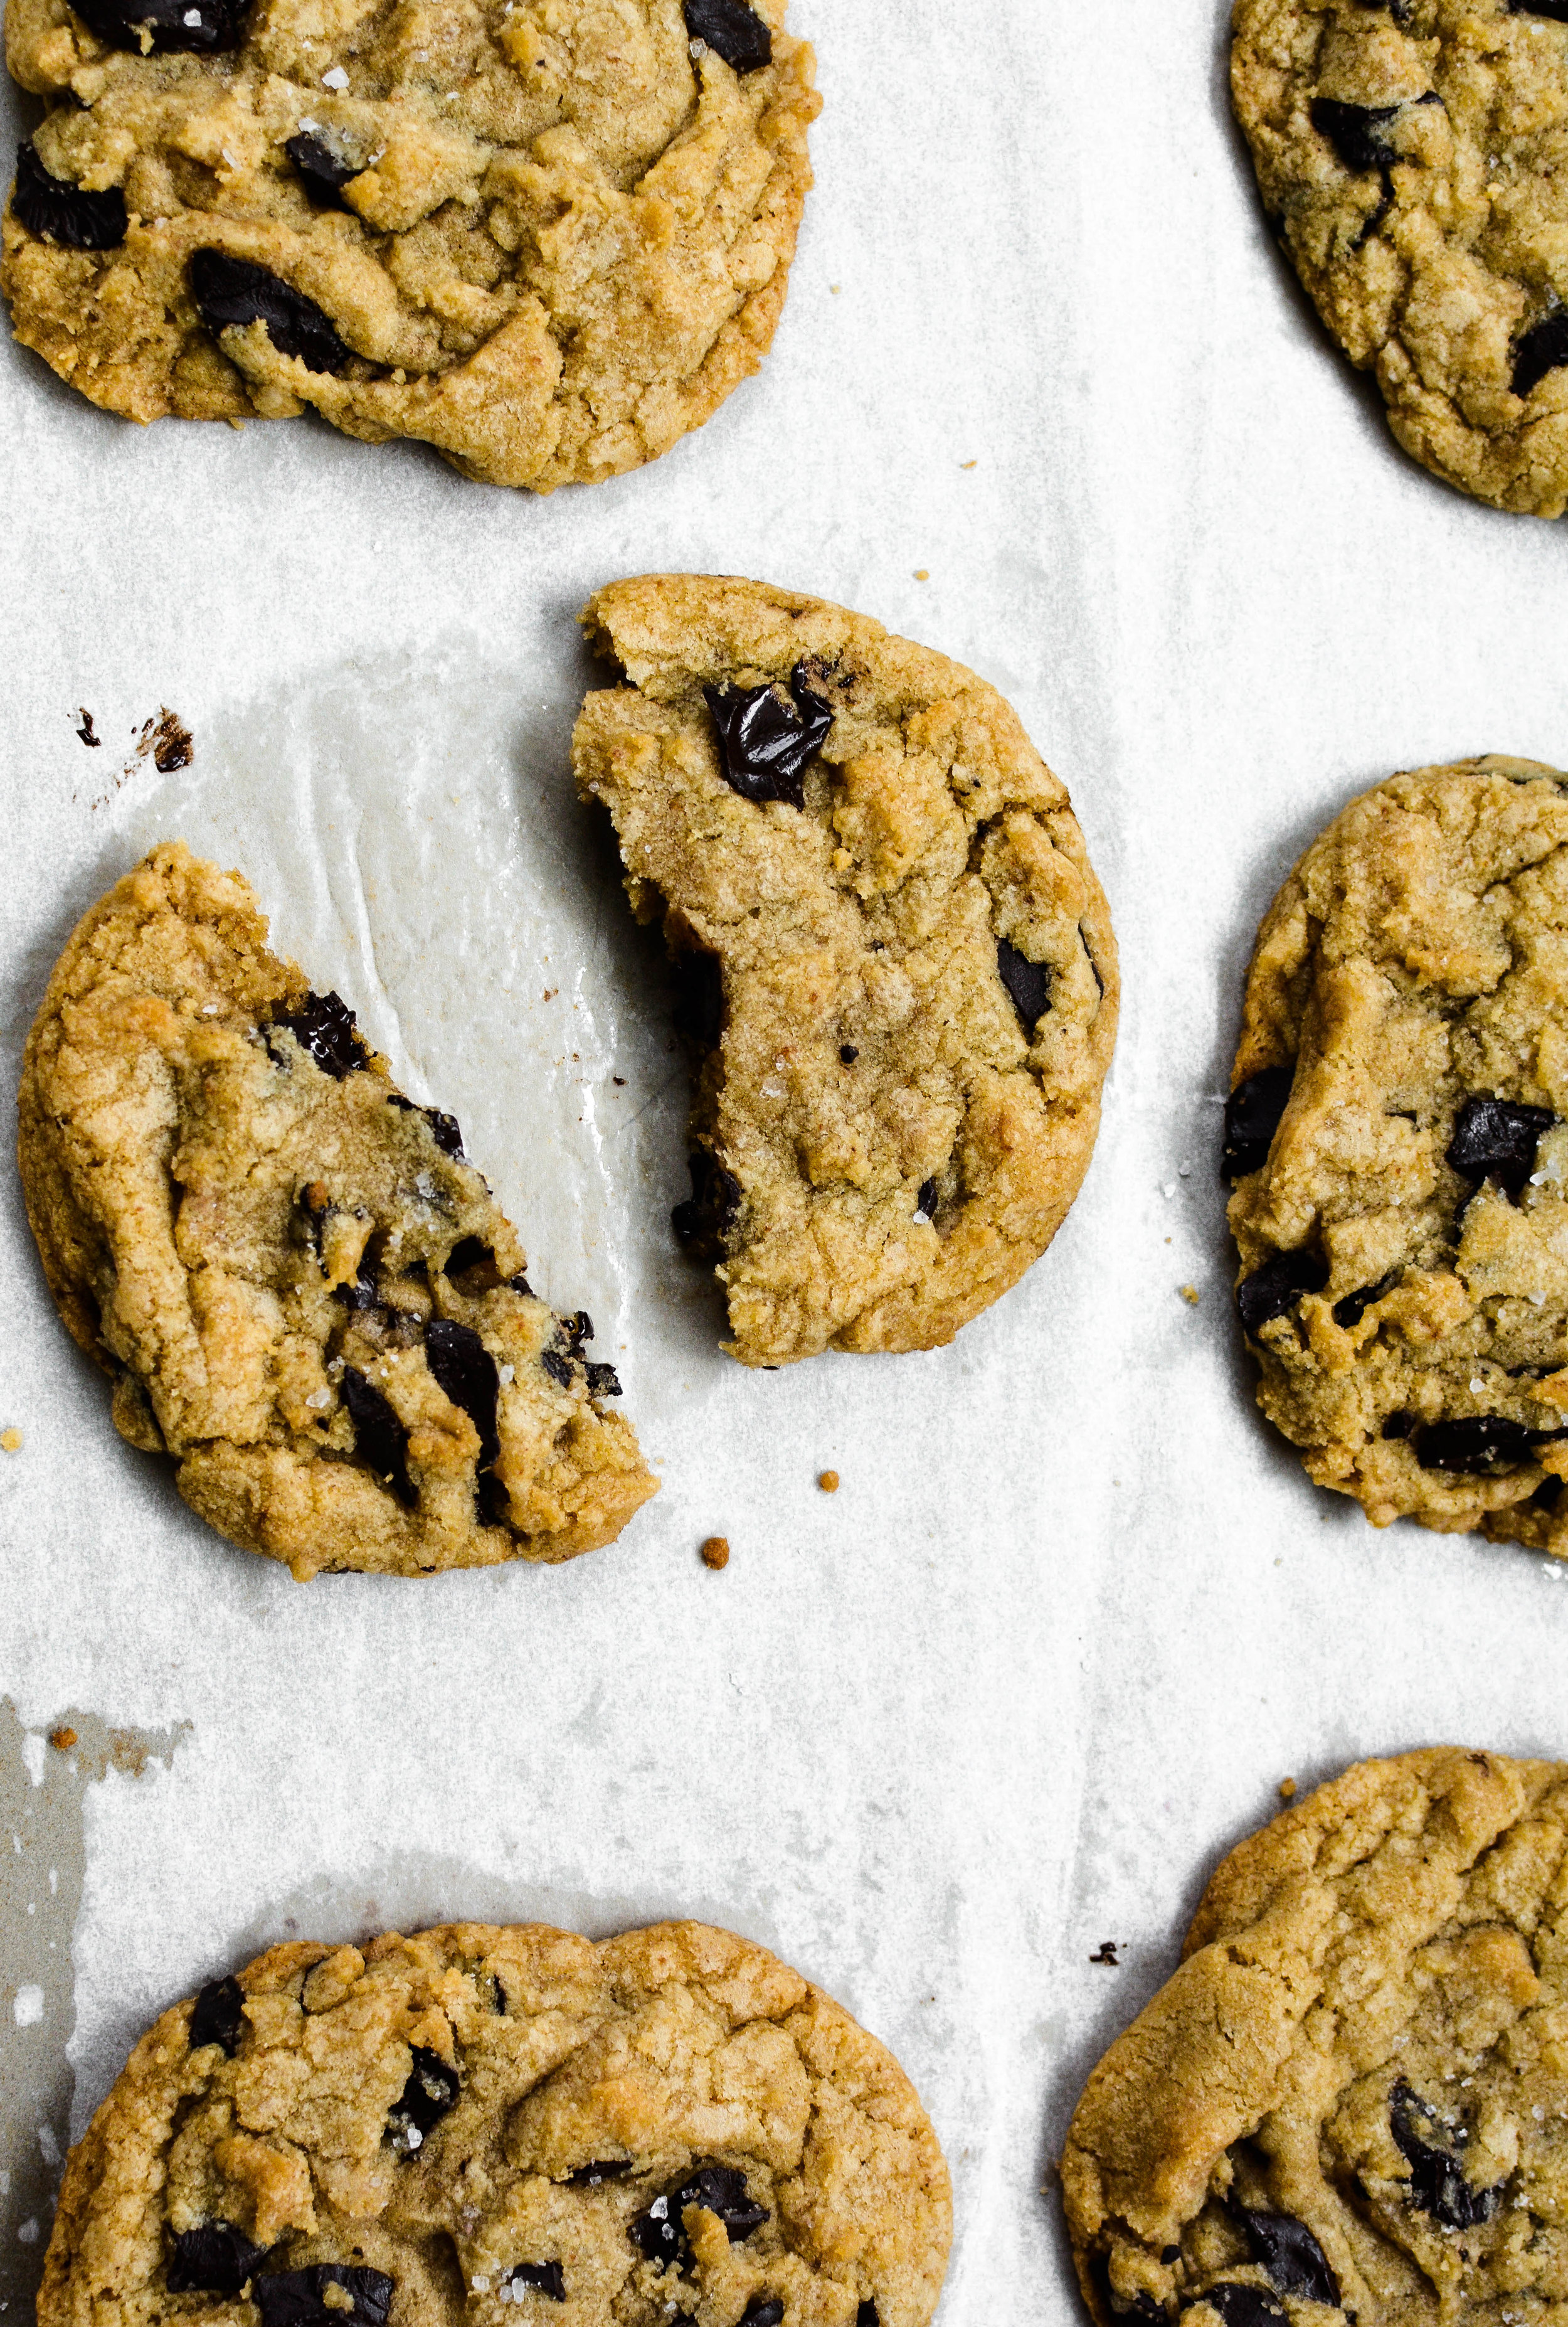 Amalia's Browned Butter Chocolate Chip Cookies.